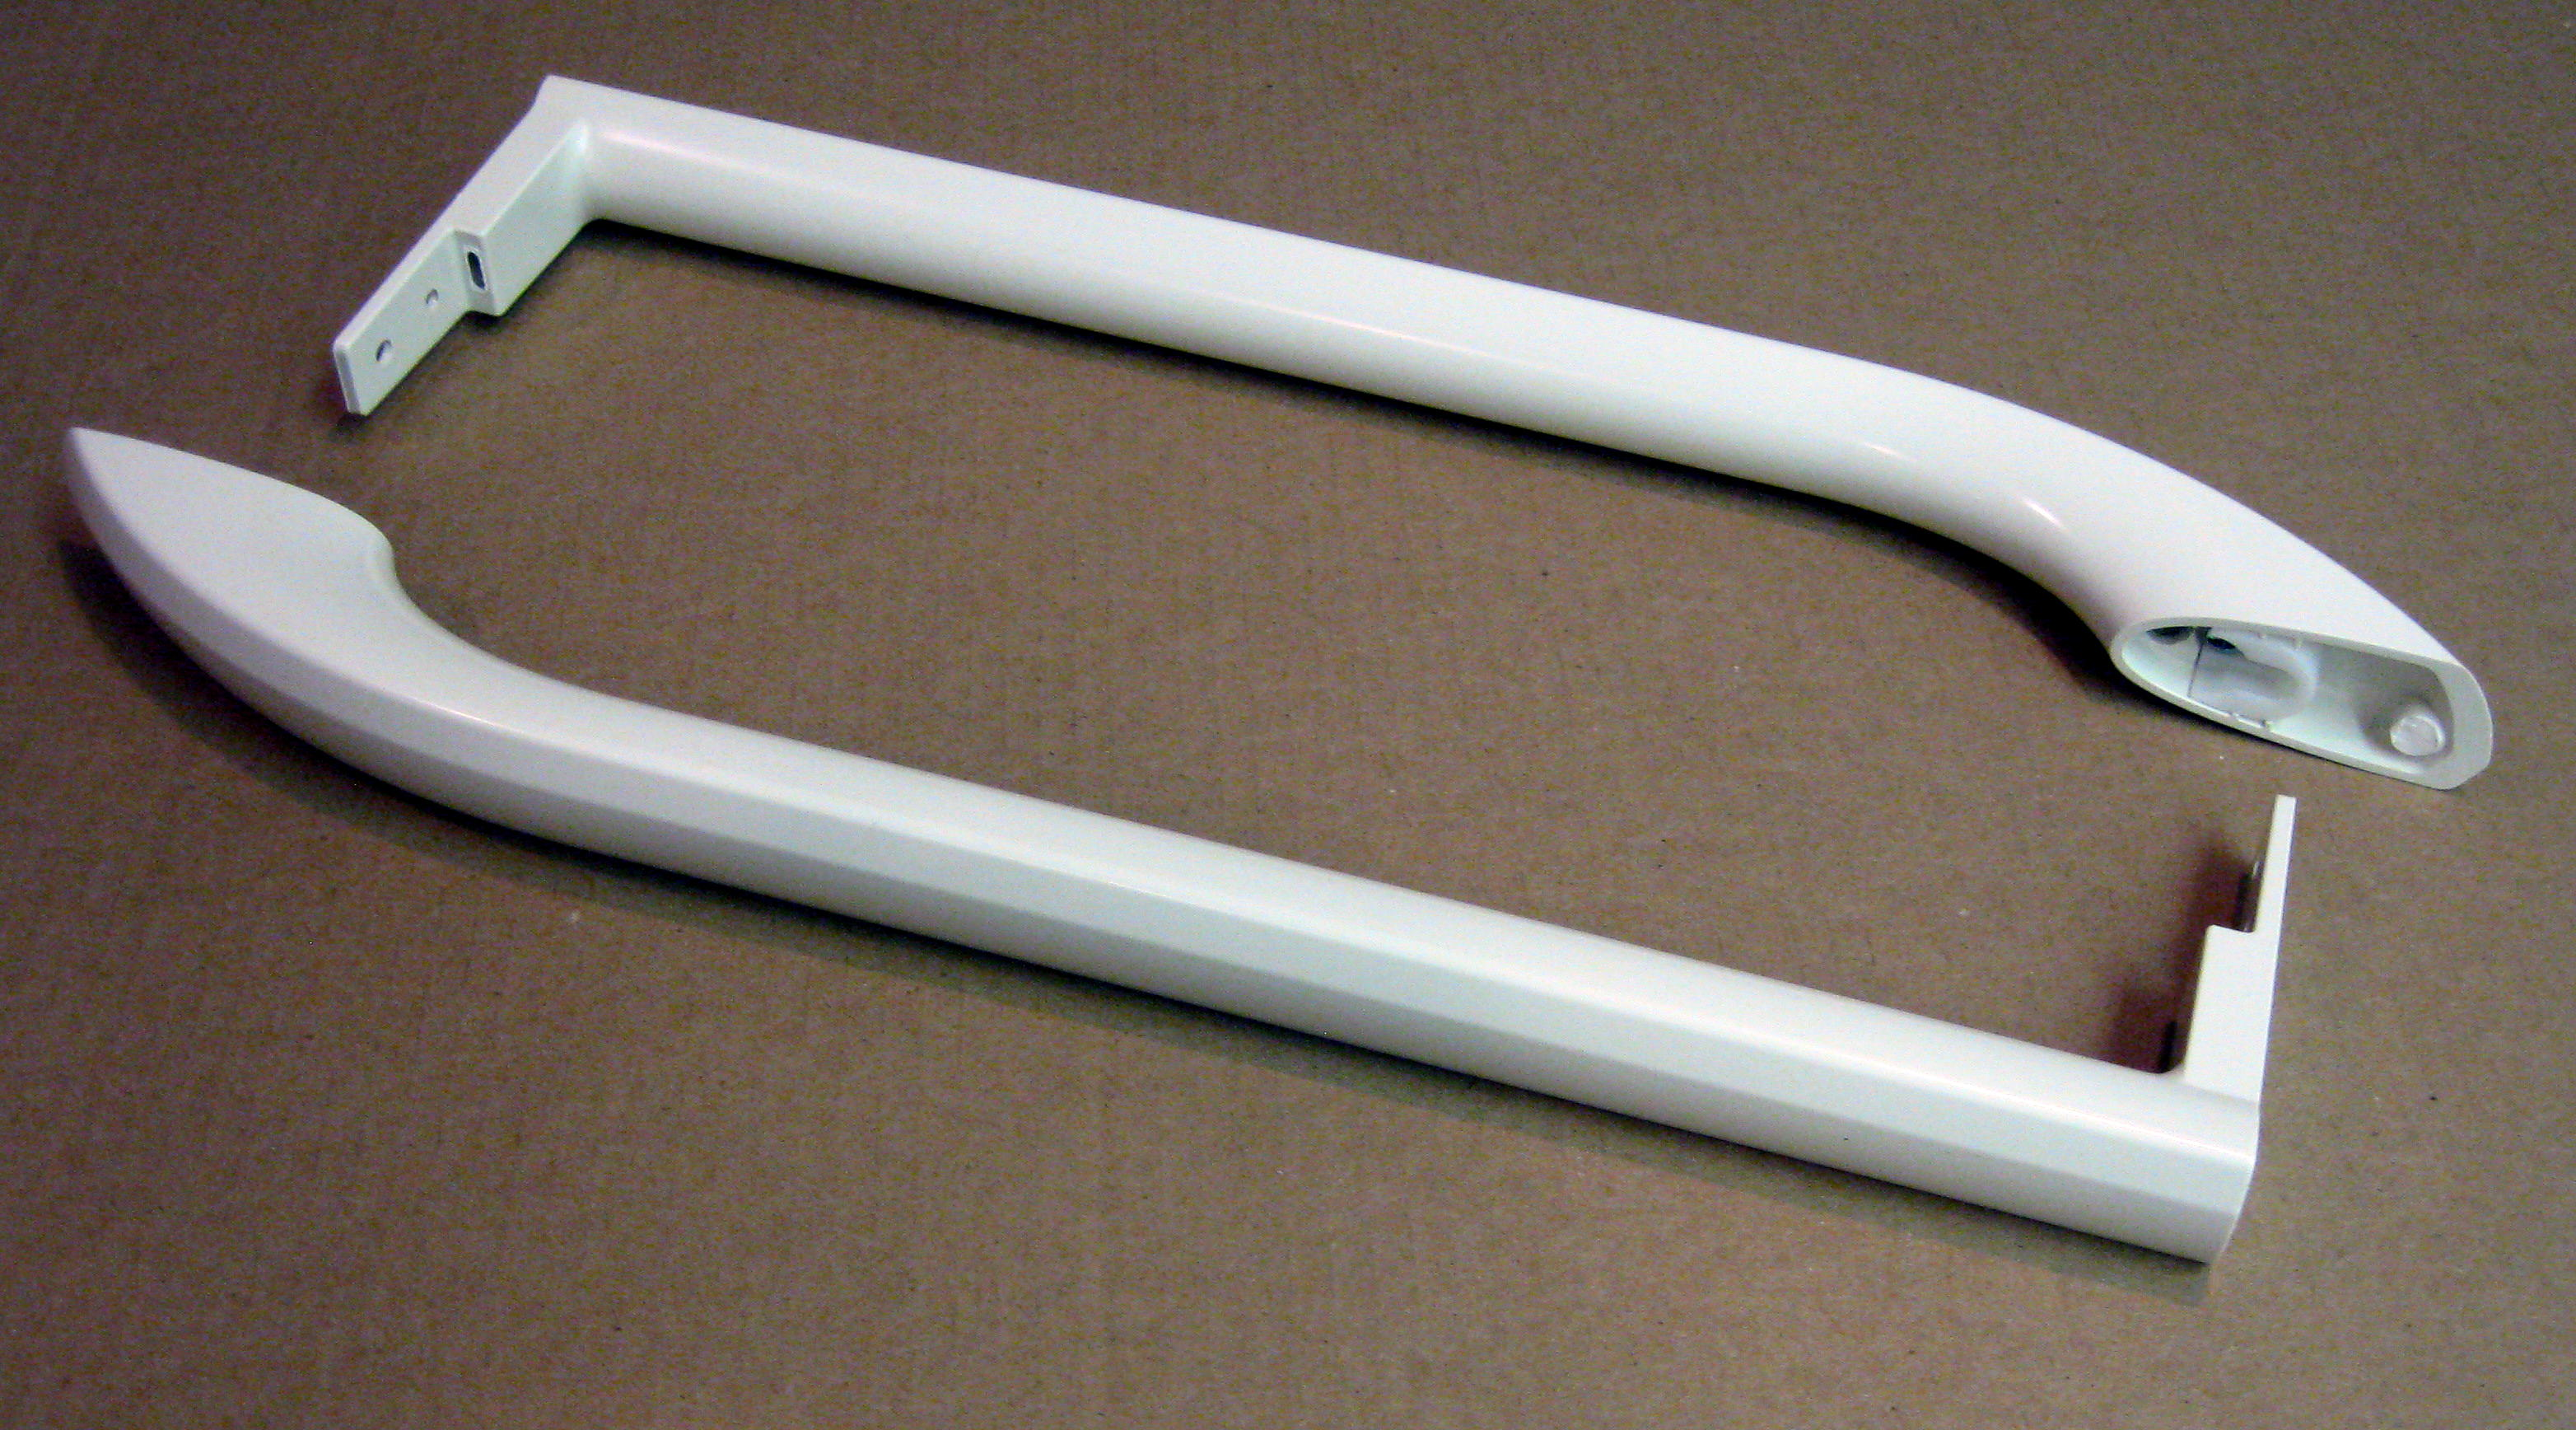 5304504508 Electrolux Frigidaire Refrigerator Freezer Door Handle Set  Bisque AP6004364 PS11757946   Walmart.com